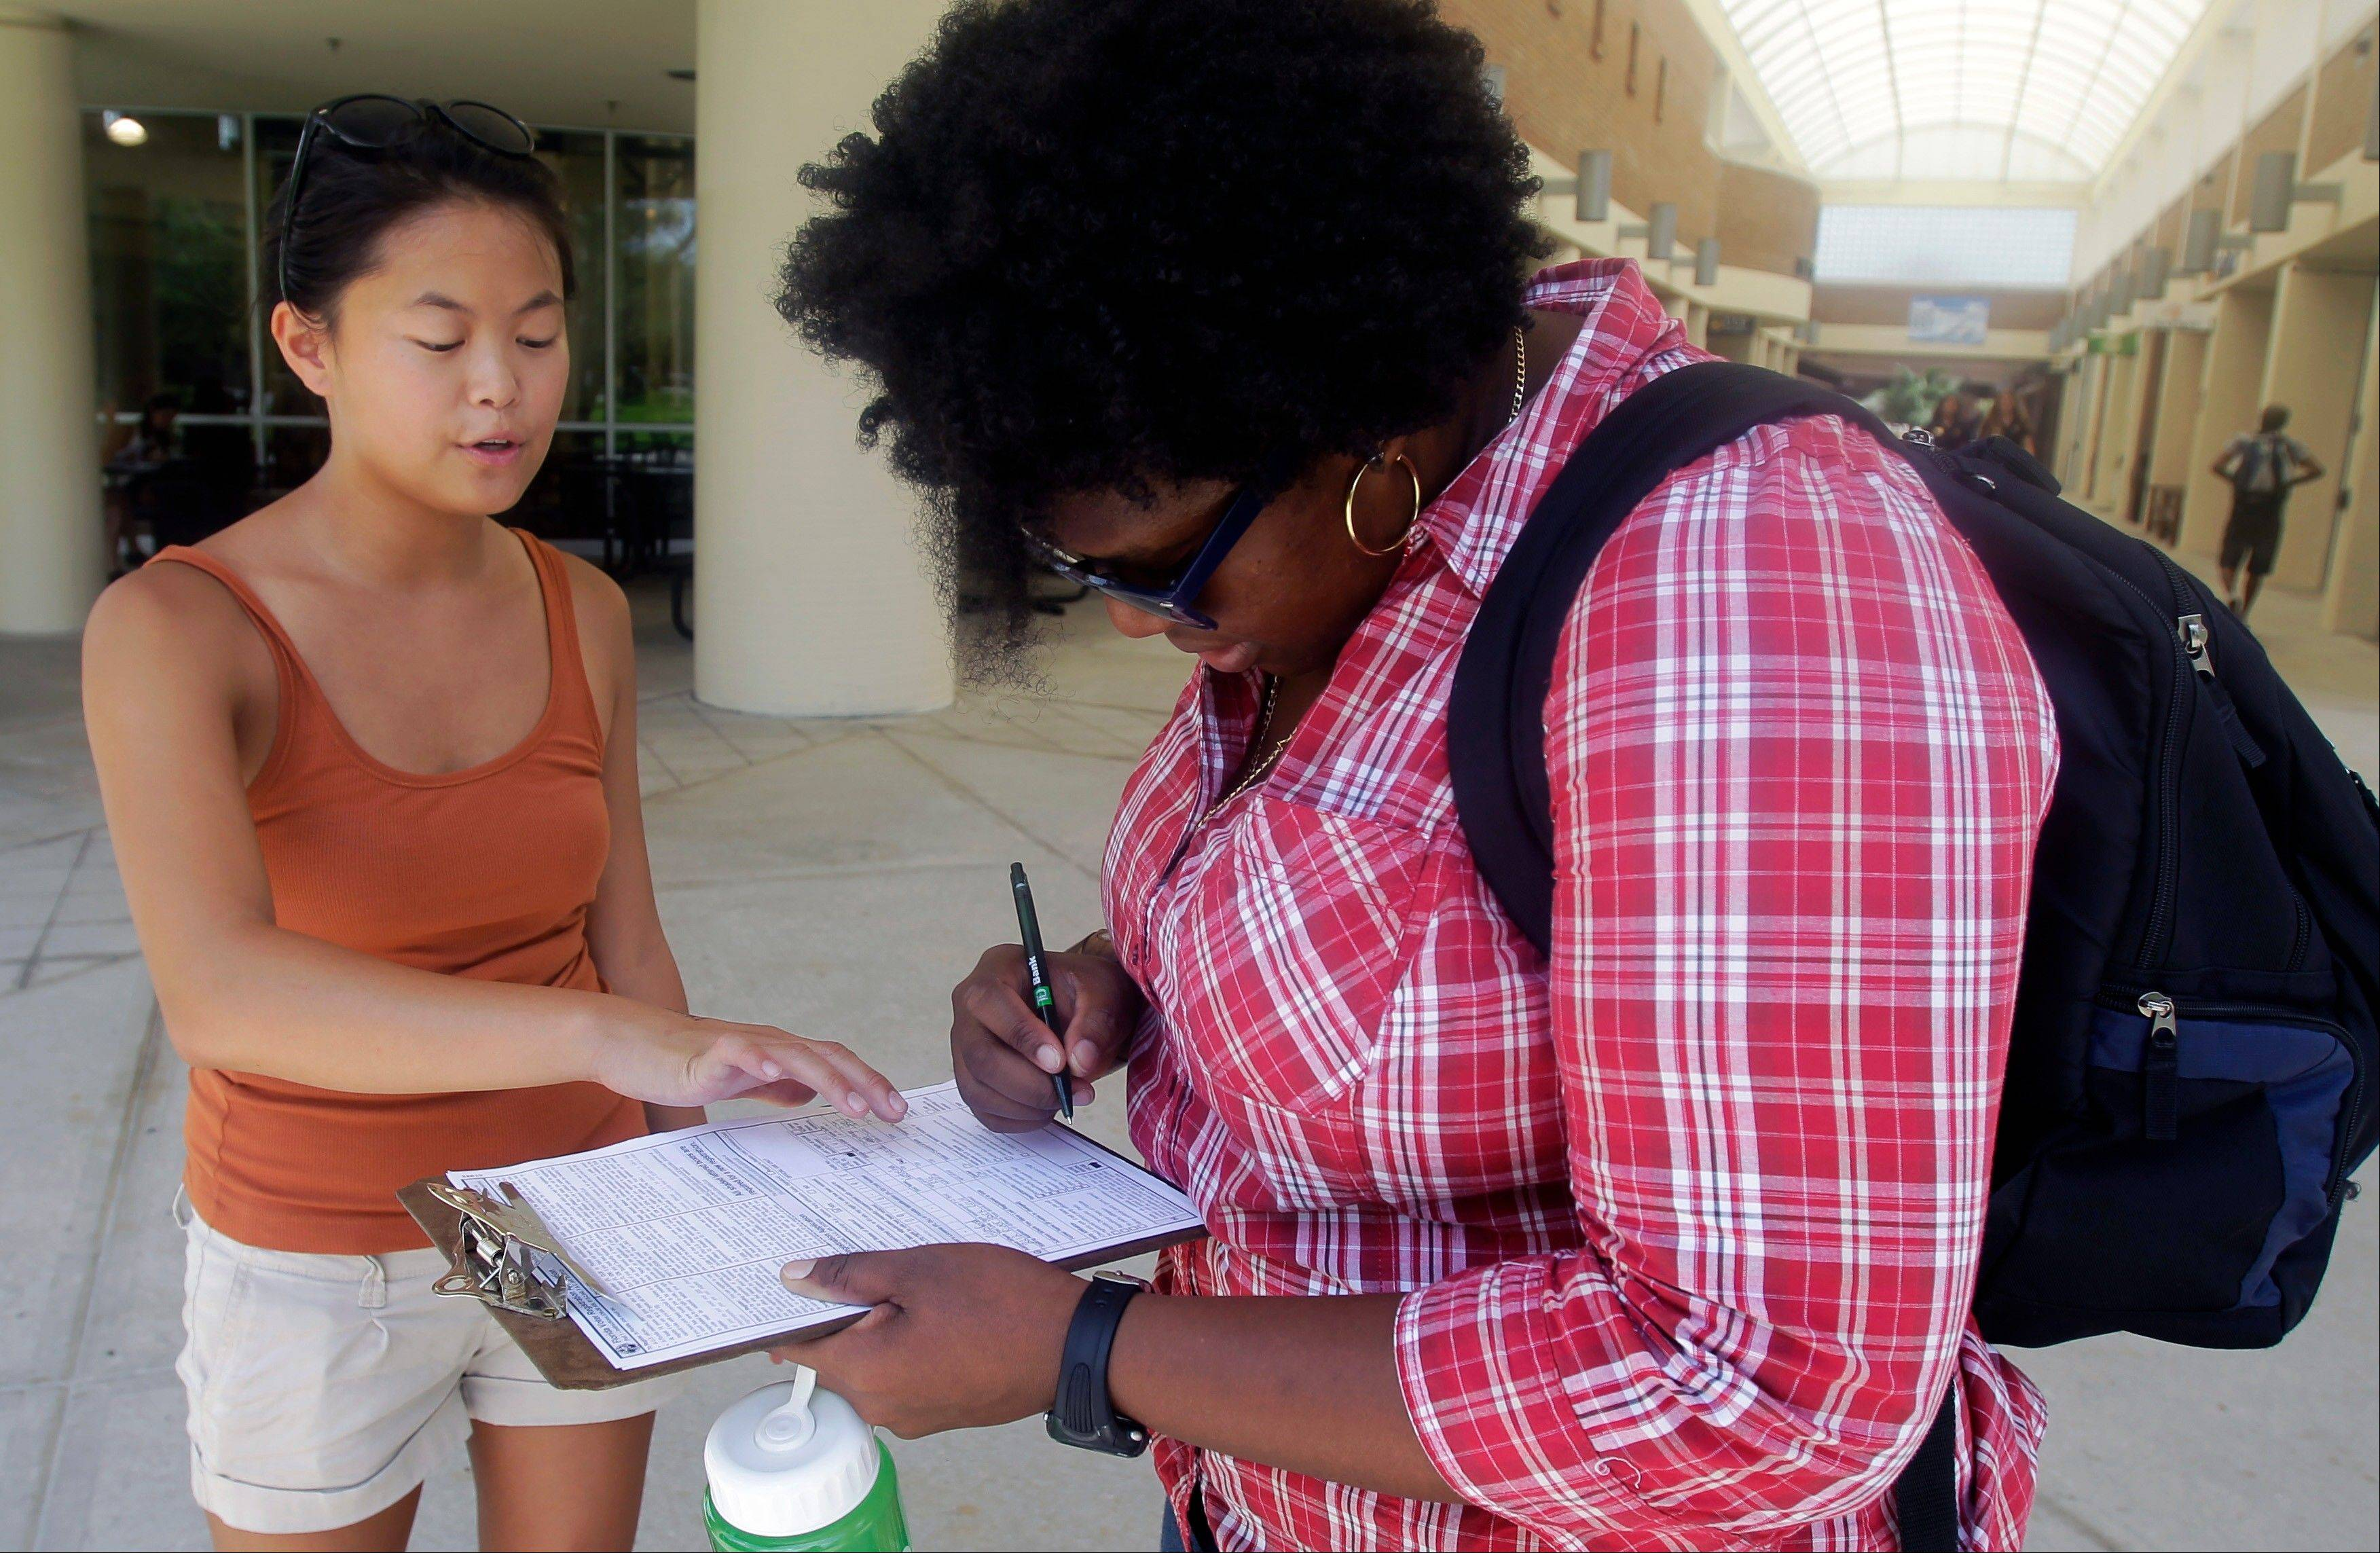 In this July 31 photo, Aubrey Marks, left, helps a University of Central Florida student to register to vote in Orlando, Fla. While most college campuses are relatively quiet, students at the University of Central Florida have taken it upon themselves to register their peers during the summer. Gone are the days when young voters weren�t taken seriously. In 2008, they helped propel Barack Obama into the Oval Office, supporting him by a 2-1 margin. But that higher profile also has landed them in the middle of the debate over some state laws that regulate voter registration and how people identify themselves at the polls.